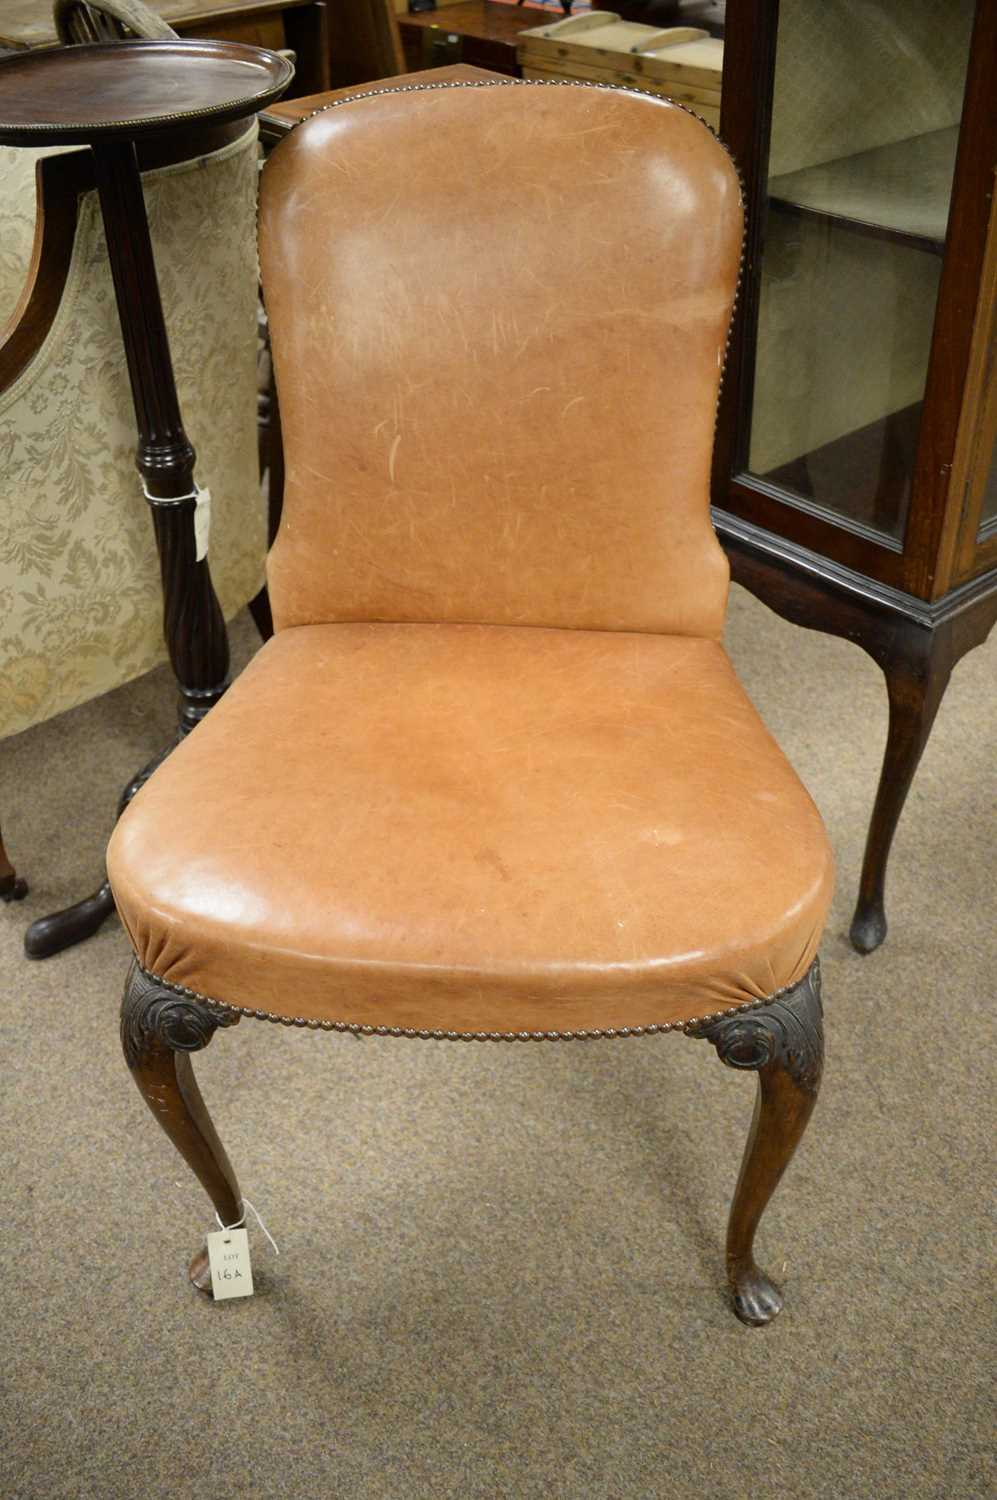 19th Century mahogany and leather dining chair - Image 2 of 3